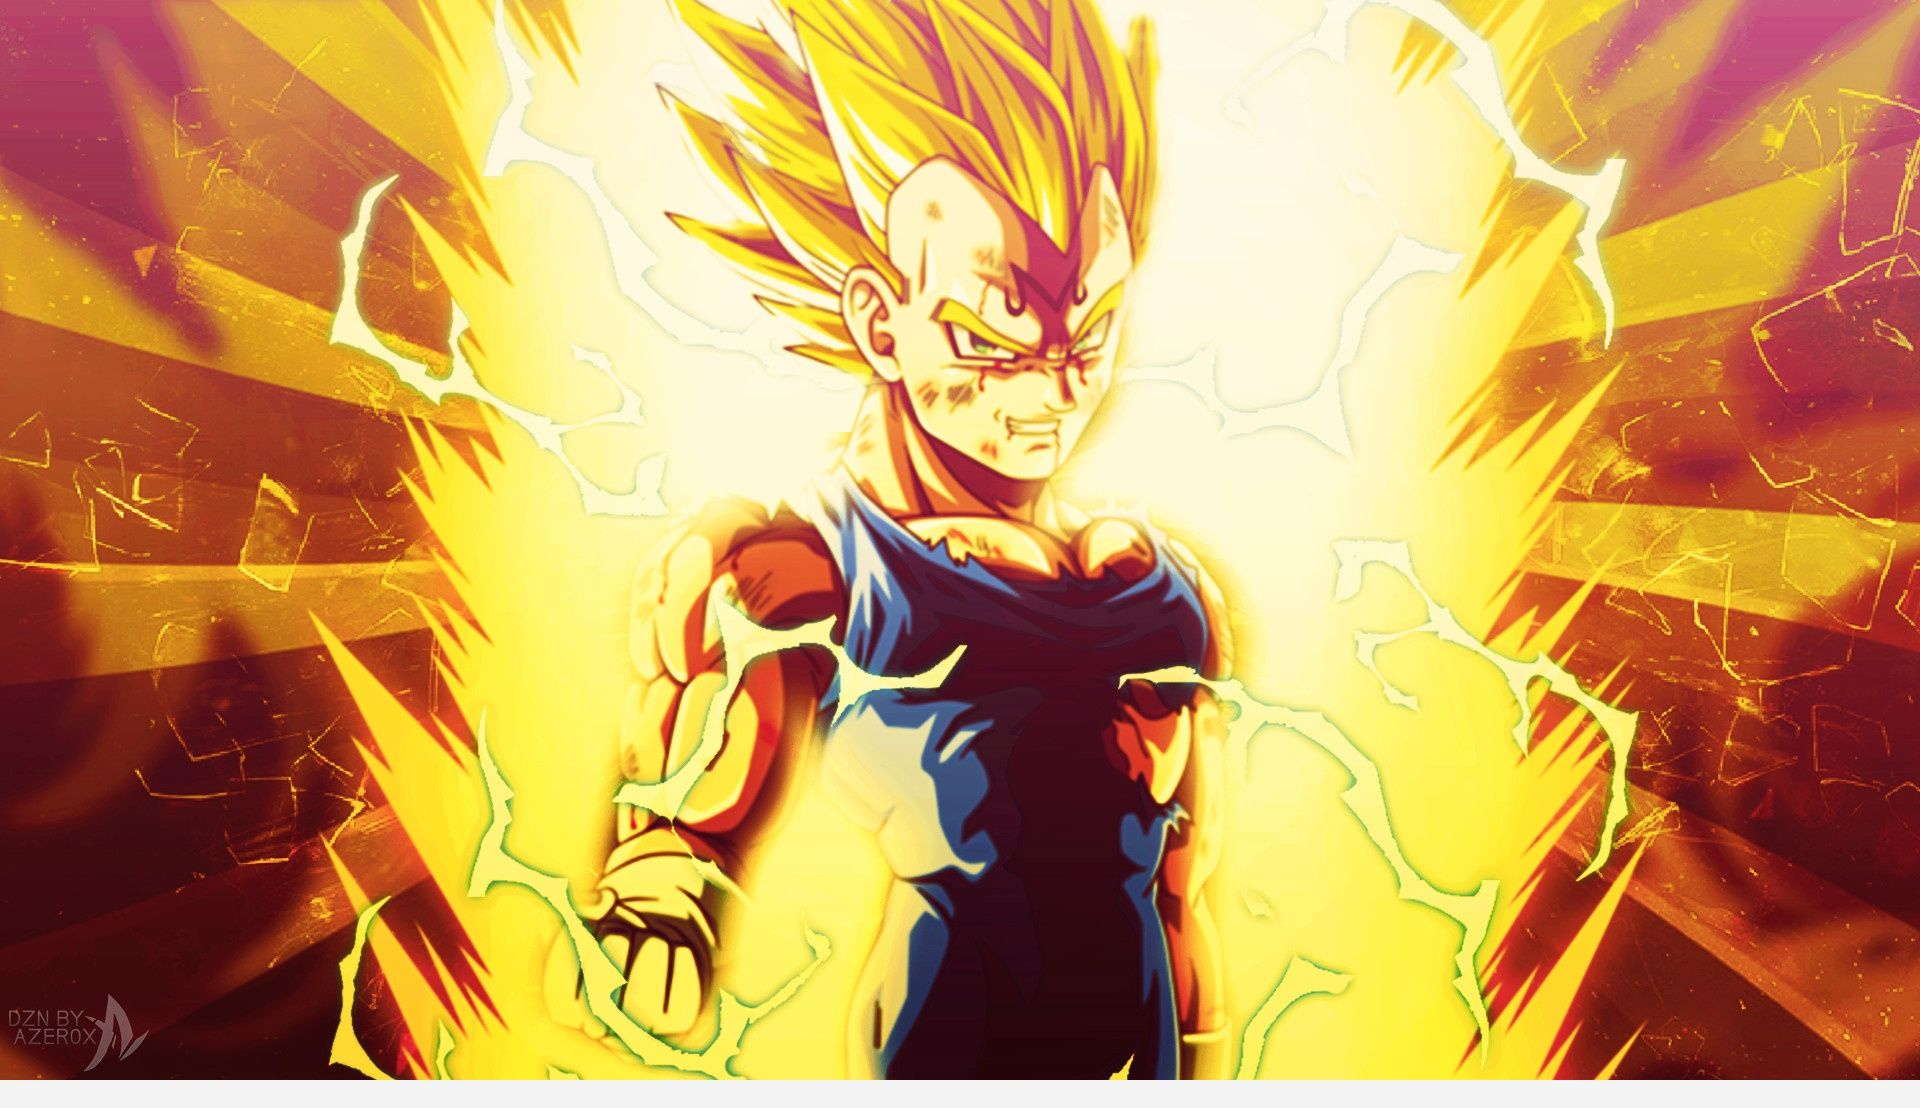 majin vegeta wallpaper hd - http://desktopwallpaper/majin